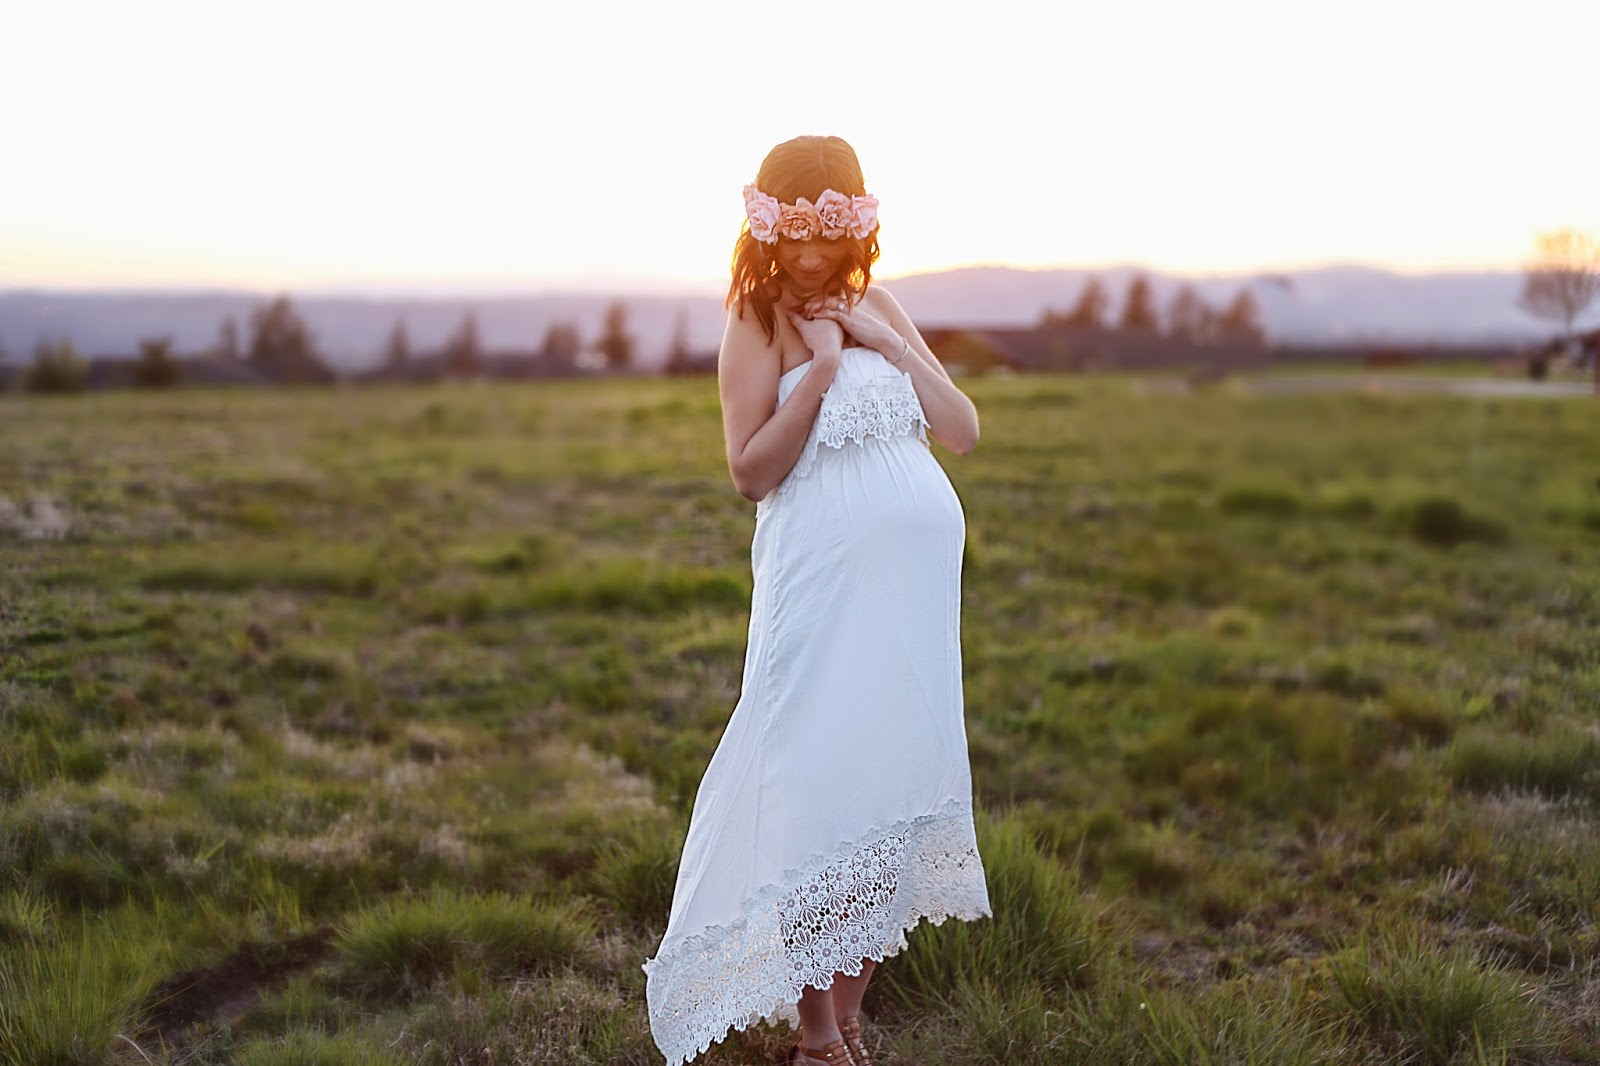 portland oregon maternity session, spotted:stills photography, baby, studio, natural light, jenn pacurar, floral crown, portland sunset